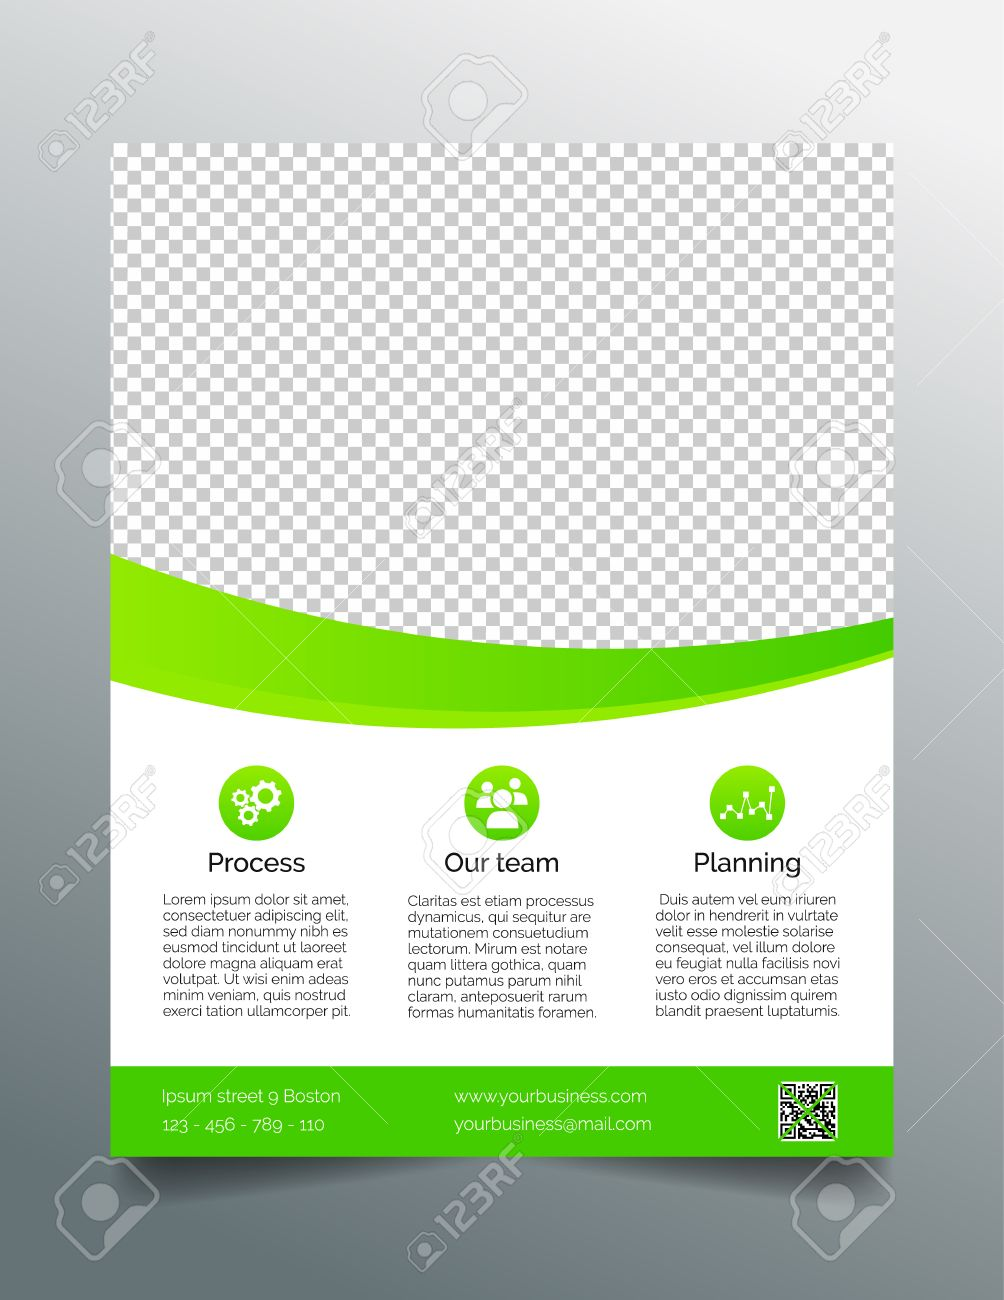 Business Flyer Template Simple Sleek Design In Bright Green – Green Flyer Template